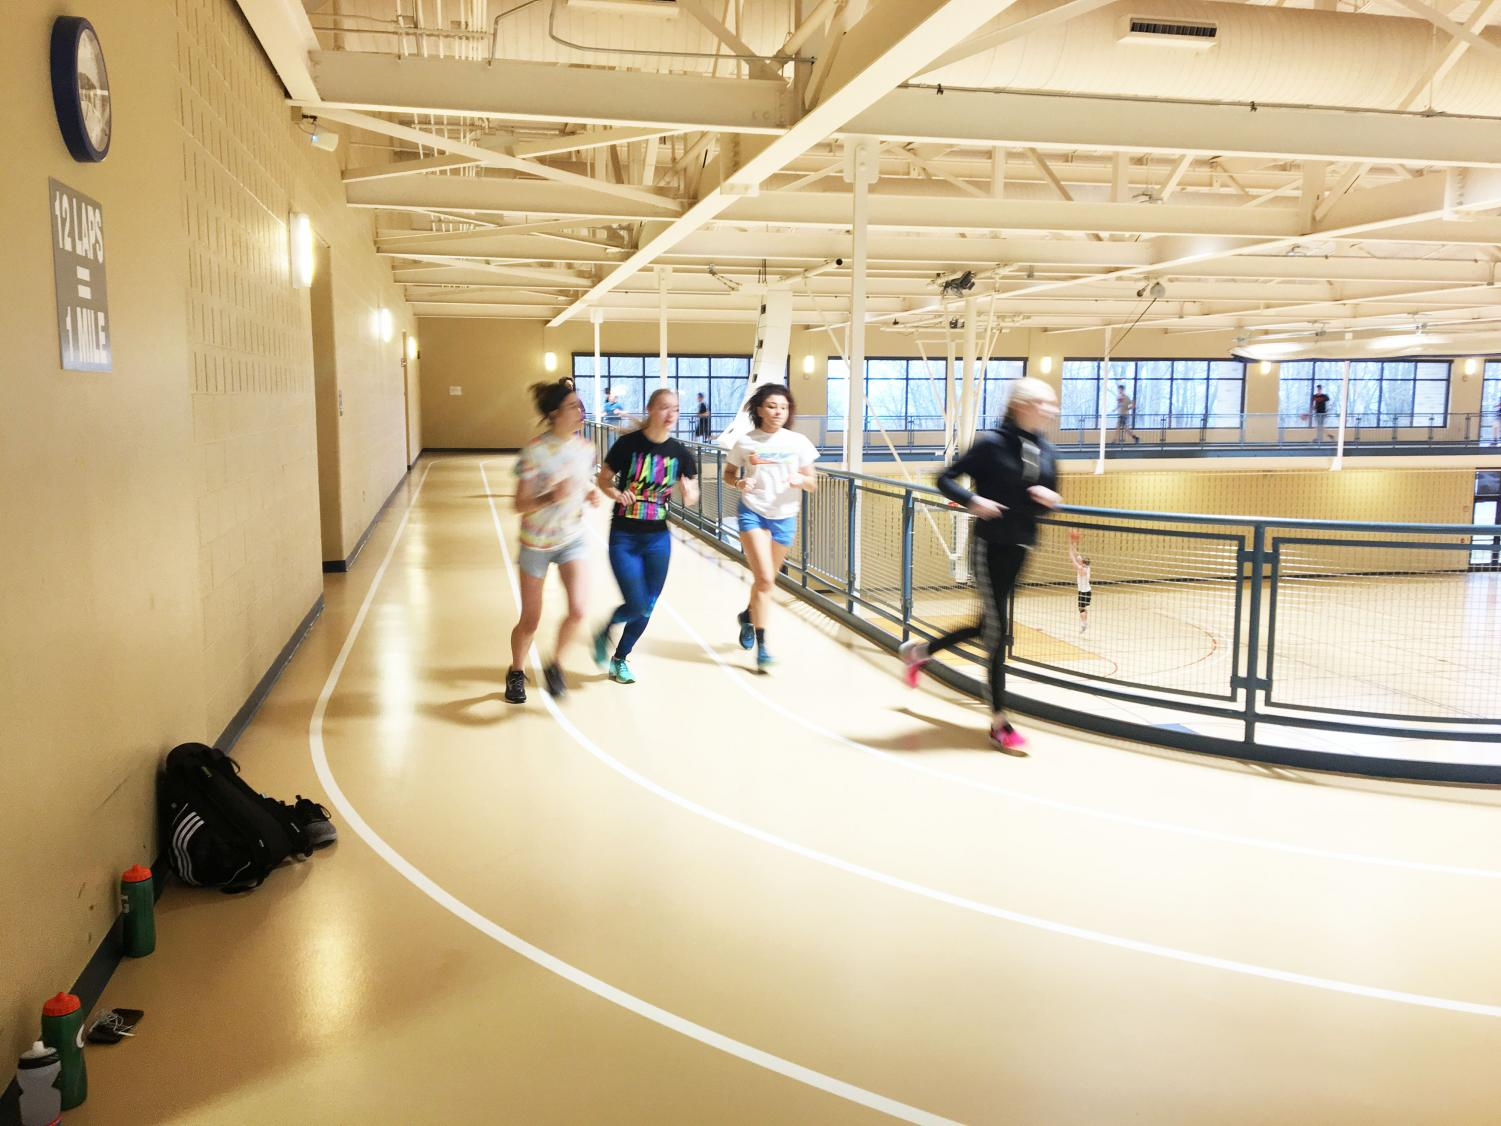 Track team members (left to right) Samantha Klutz, Alana Thomas, Taylor Briscoe and Samantha Miller run laps around the track in the Wellness Center last Friday.